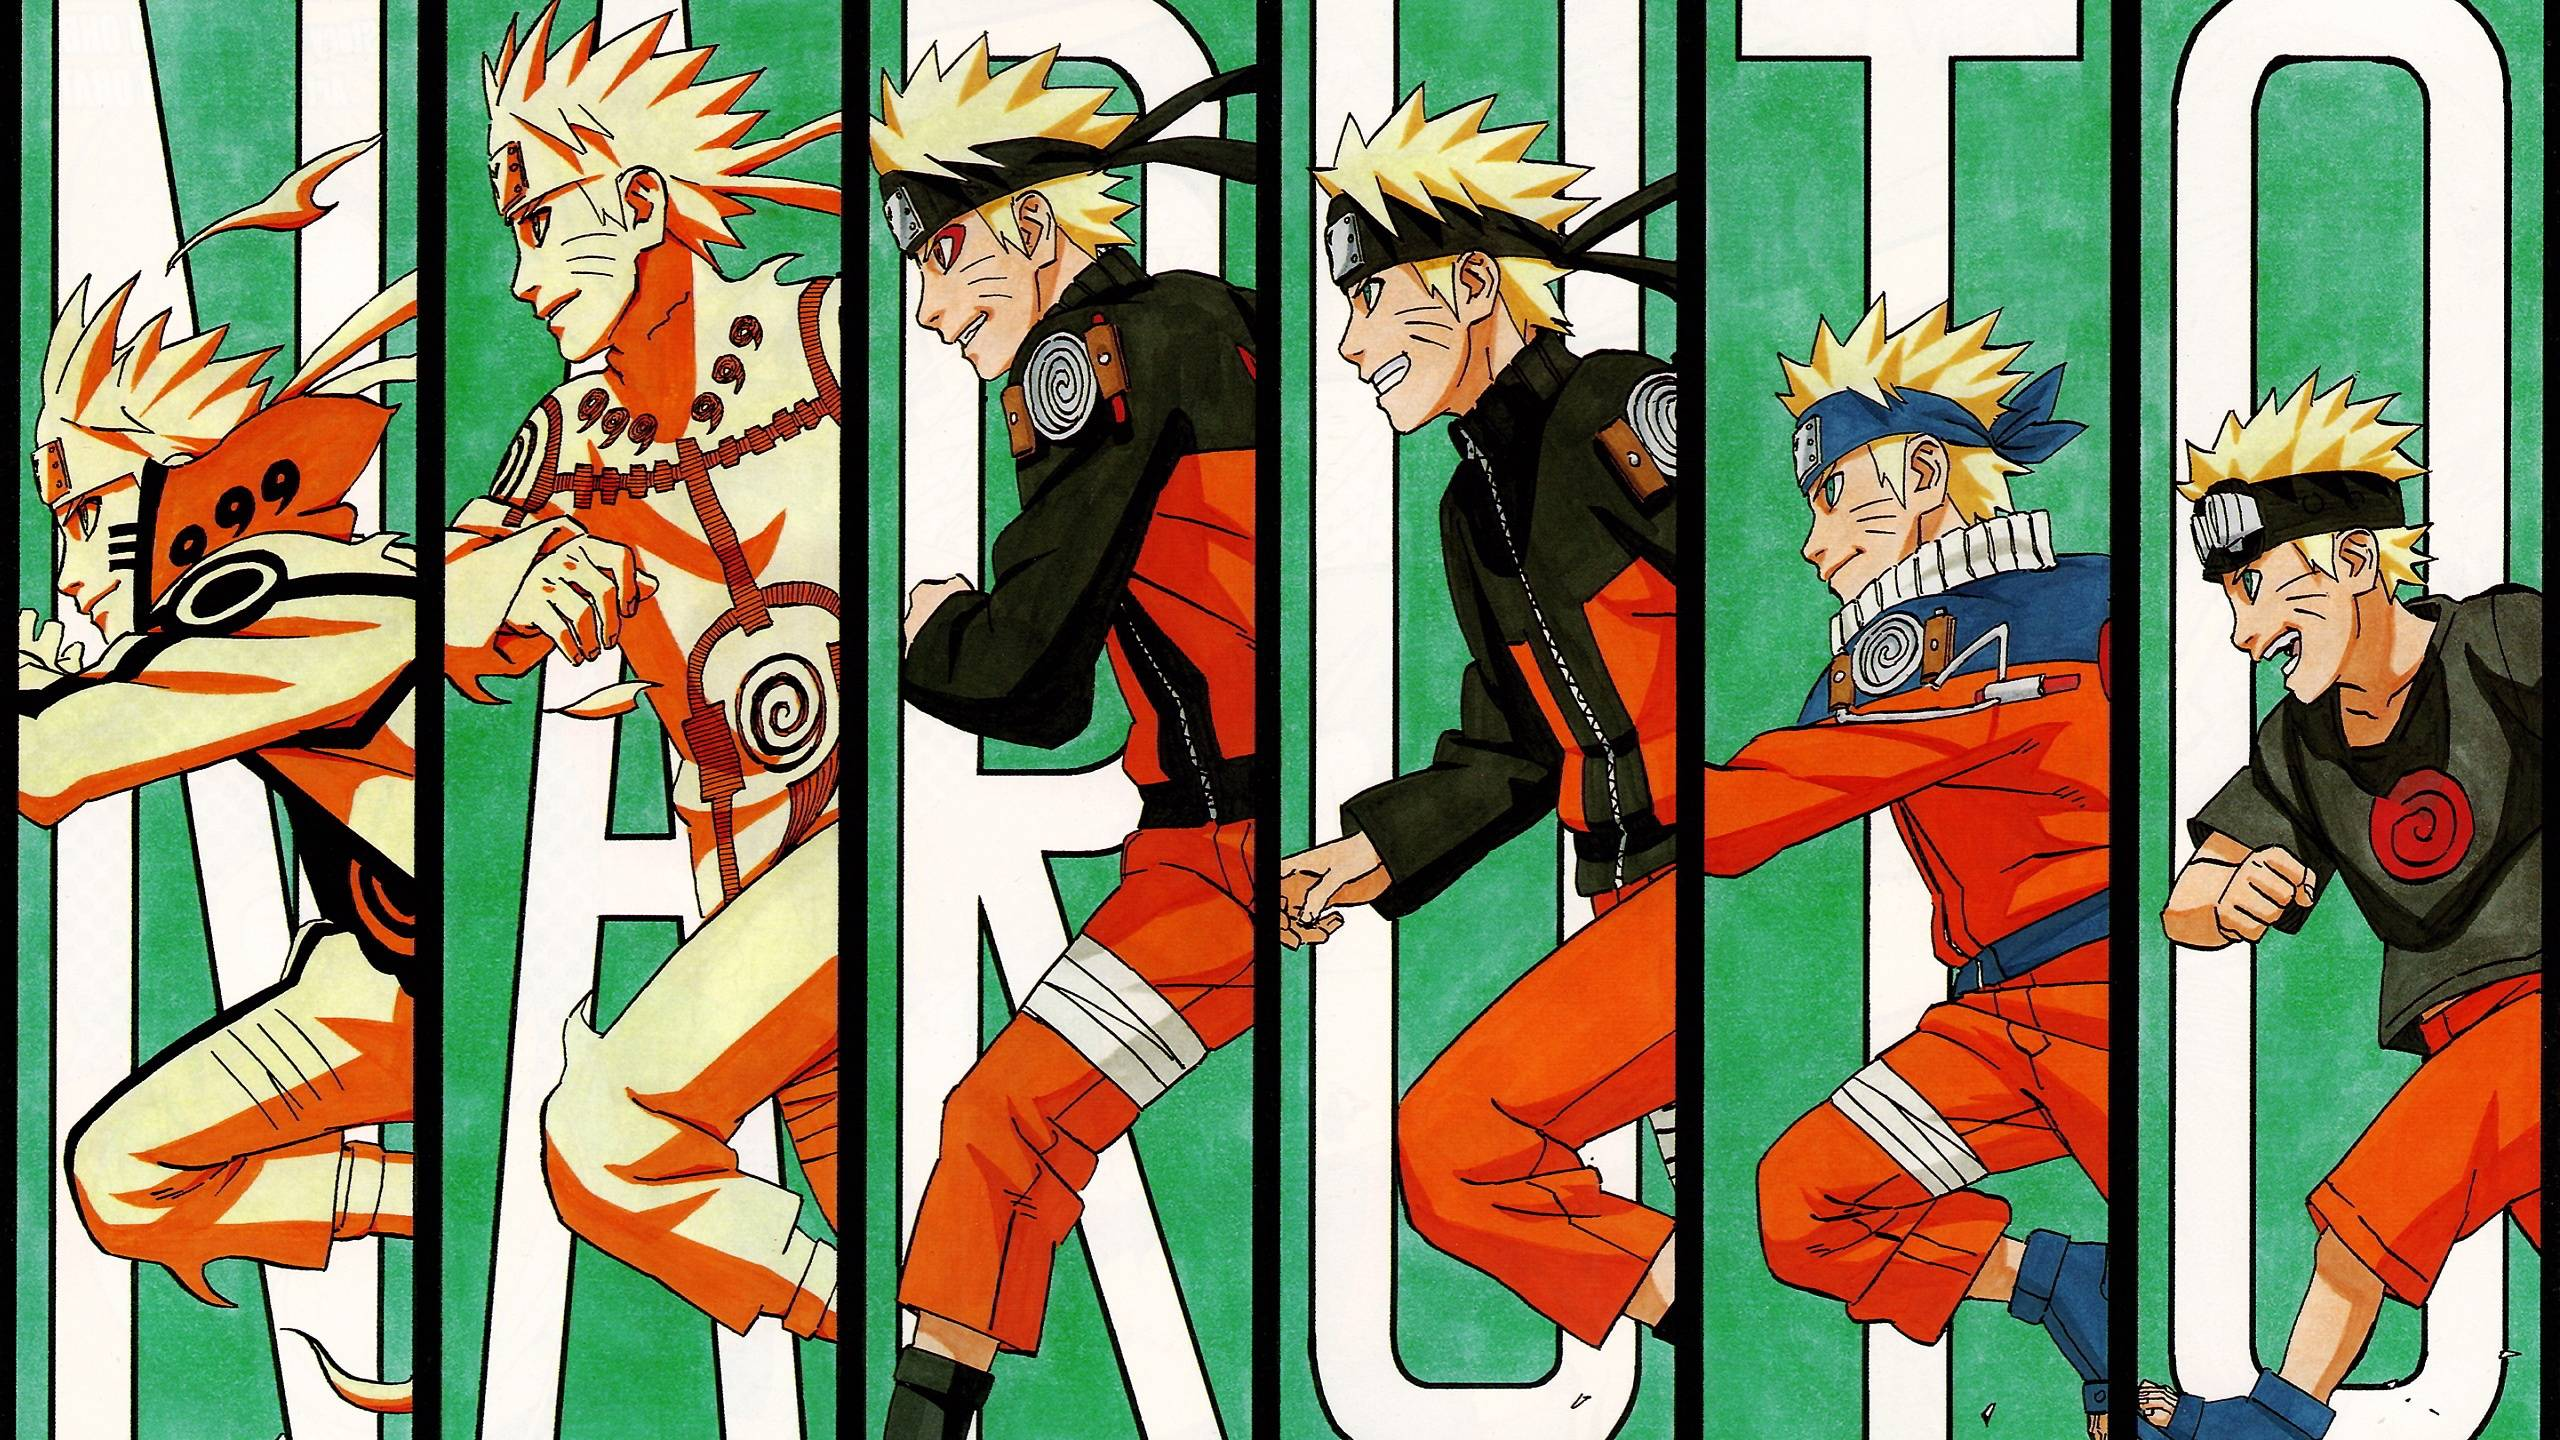 Naruto Characters In Real World Background Wallpaper: Naruto Wallpapers HD 2015